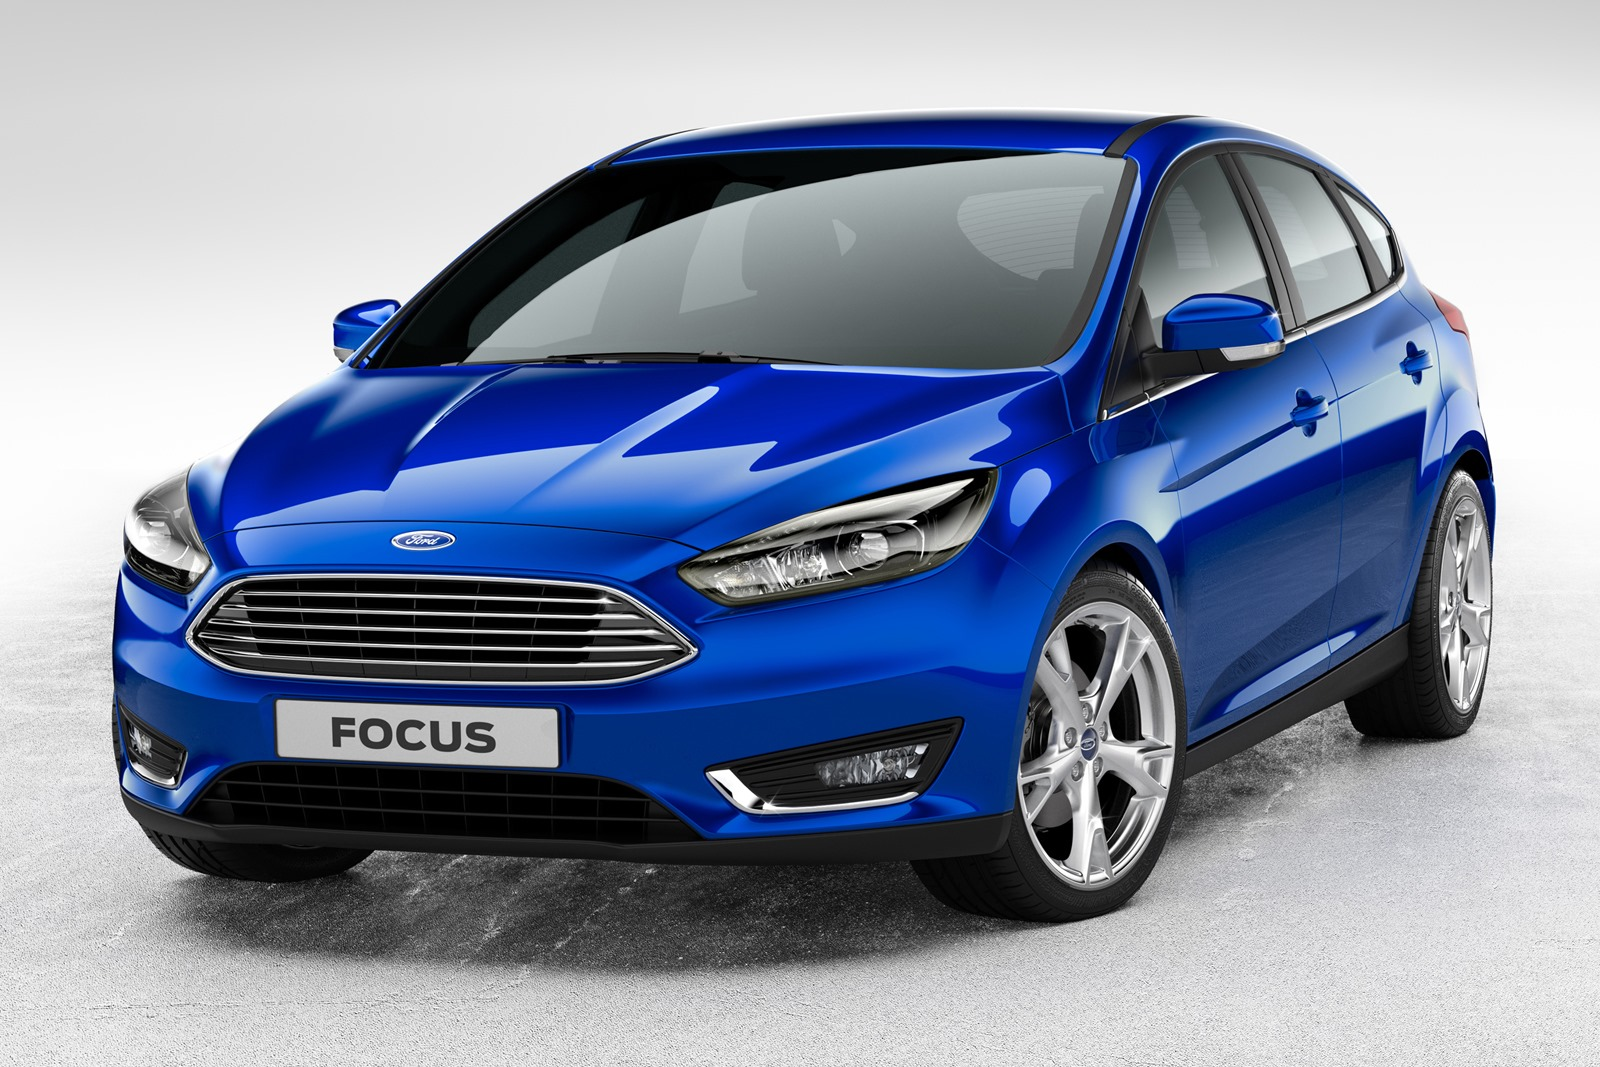 Ford-Focus-Facelift-2014-01